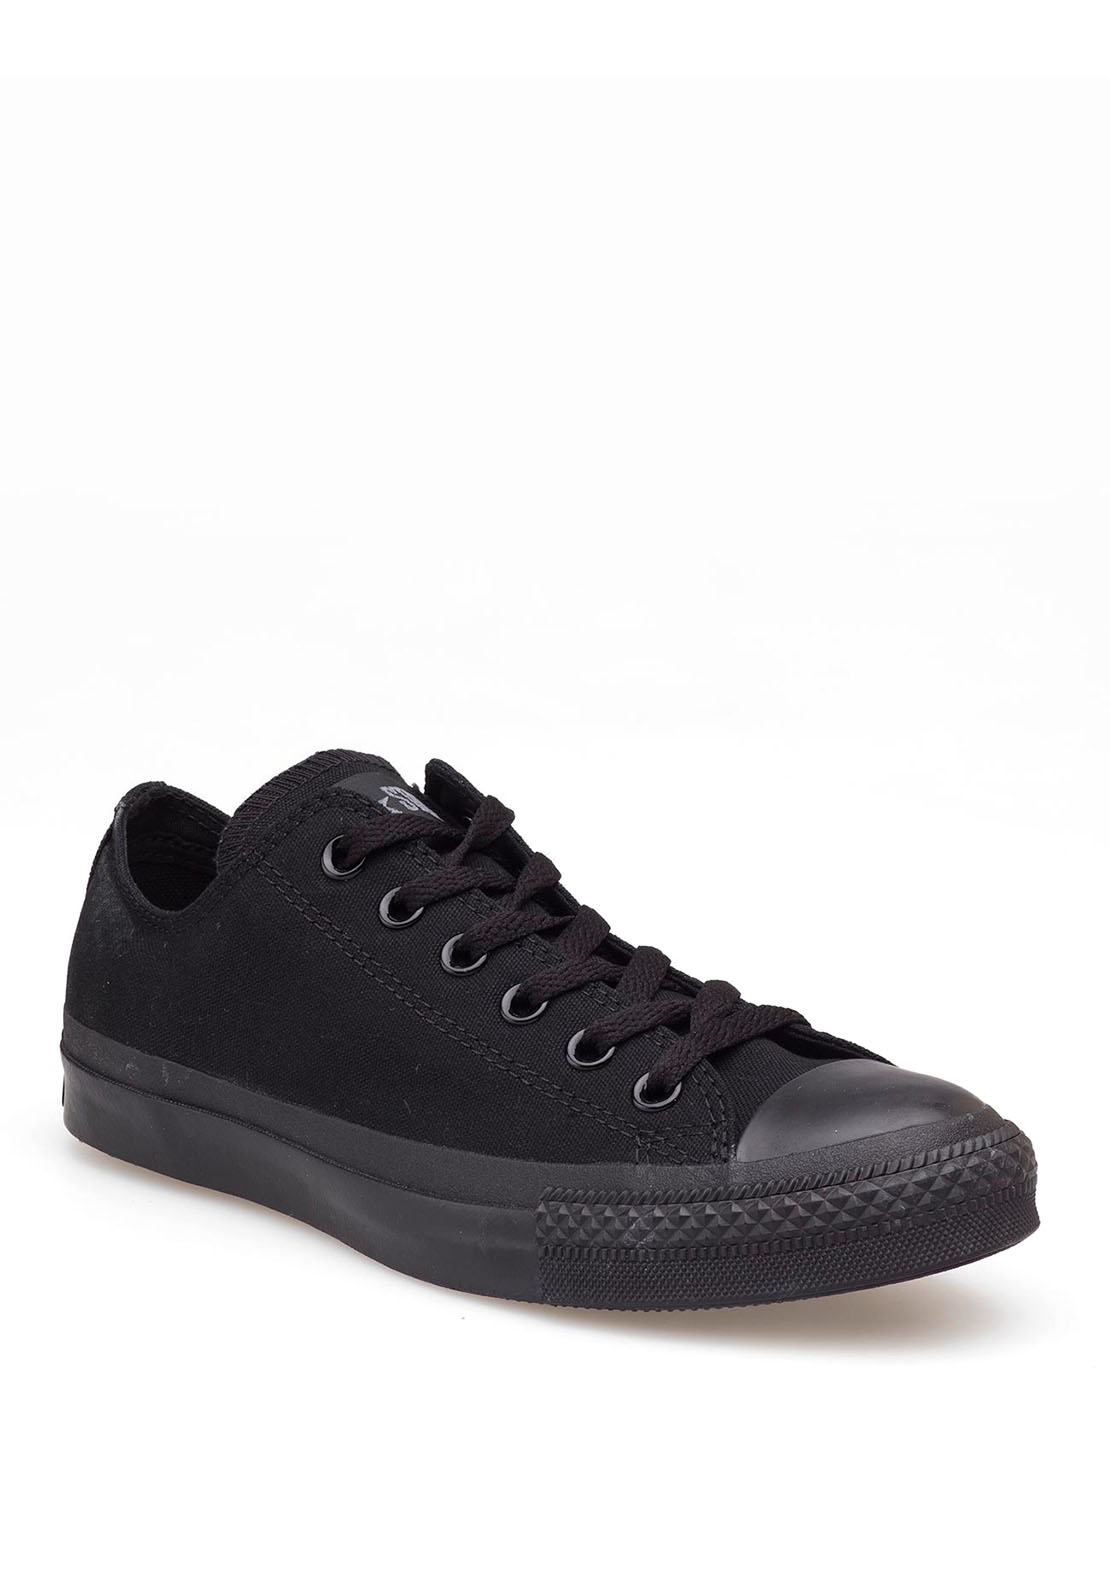 Converse Unisex Chuck Taylor All Star Low Top Trainer, Black